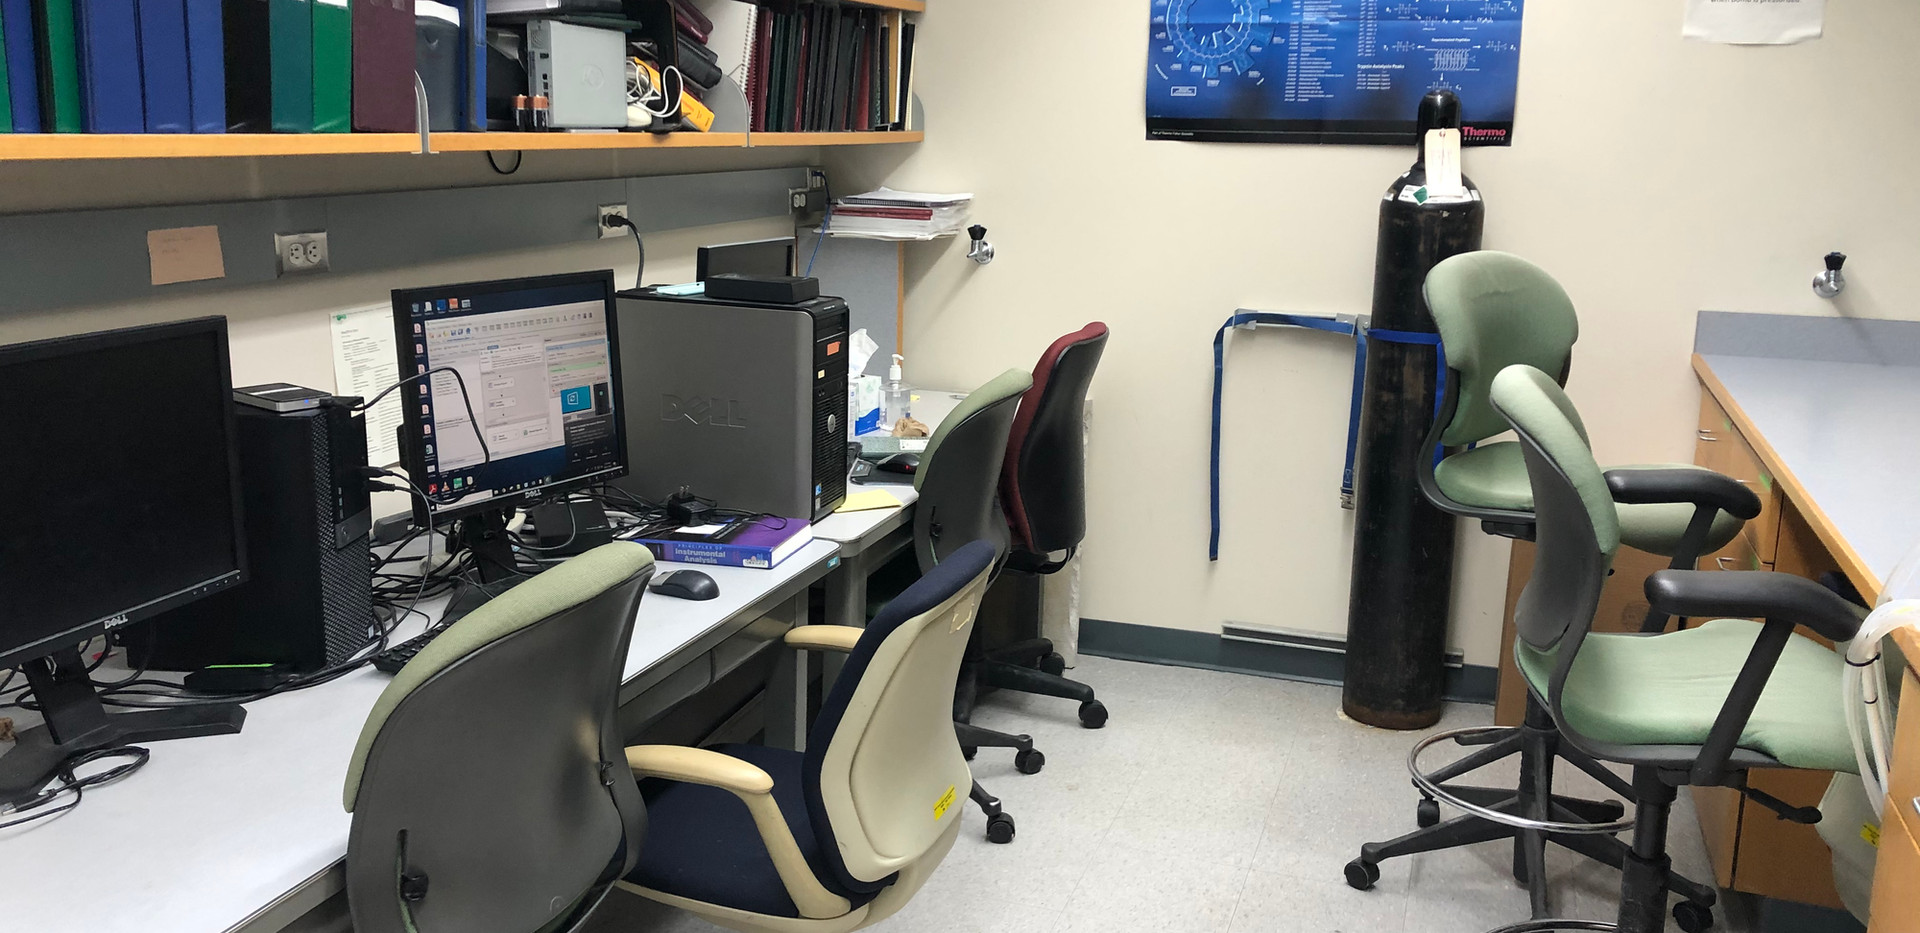 Workstations for database searching